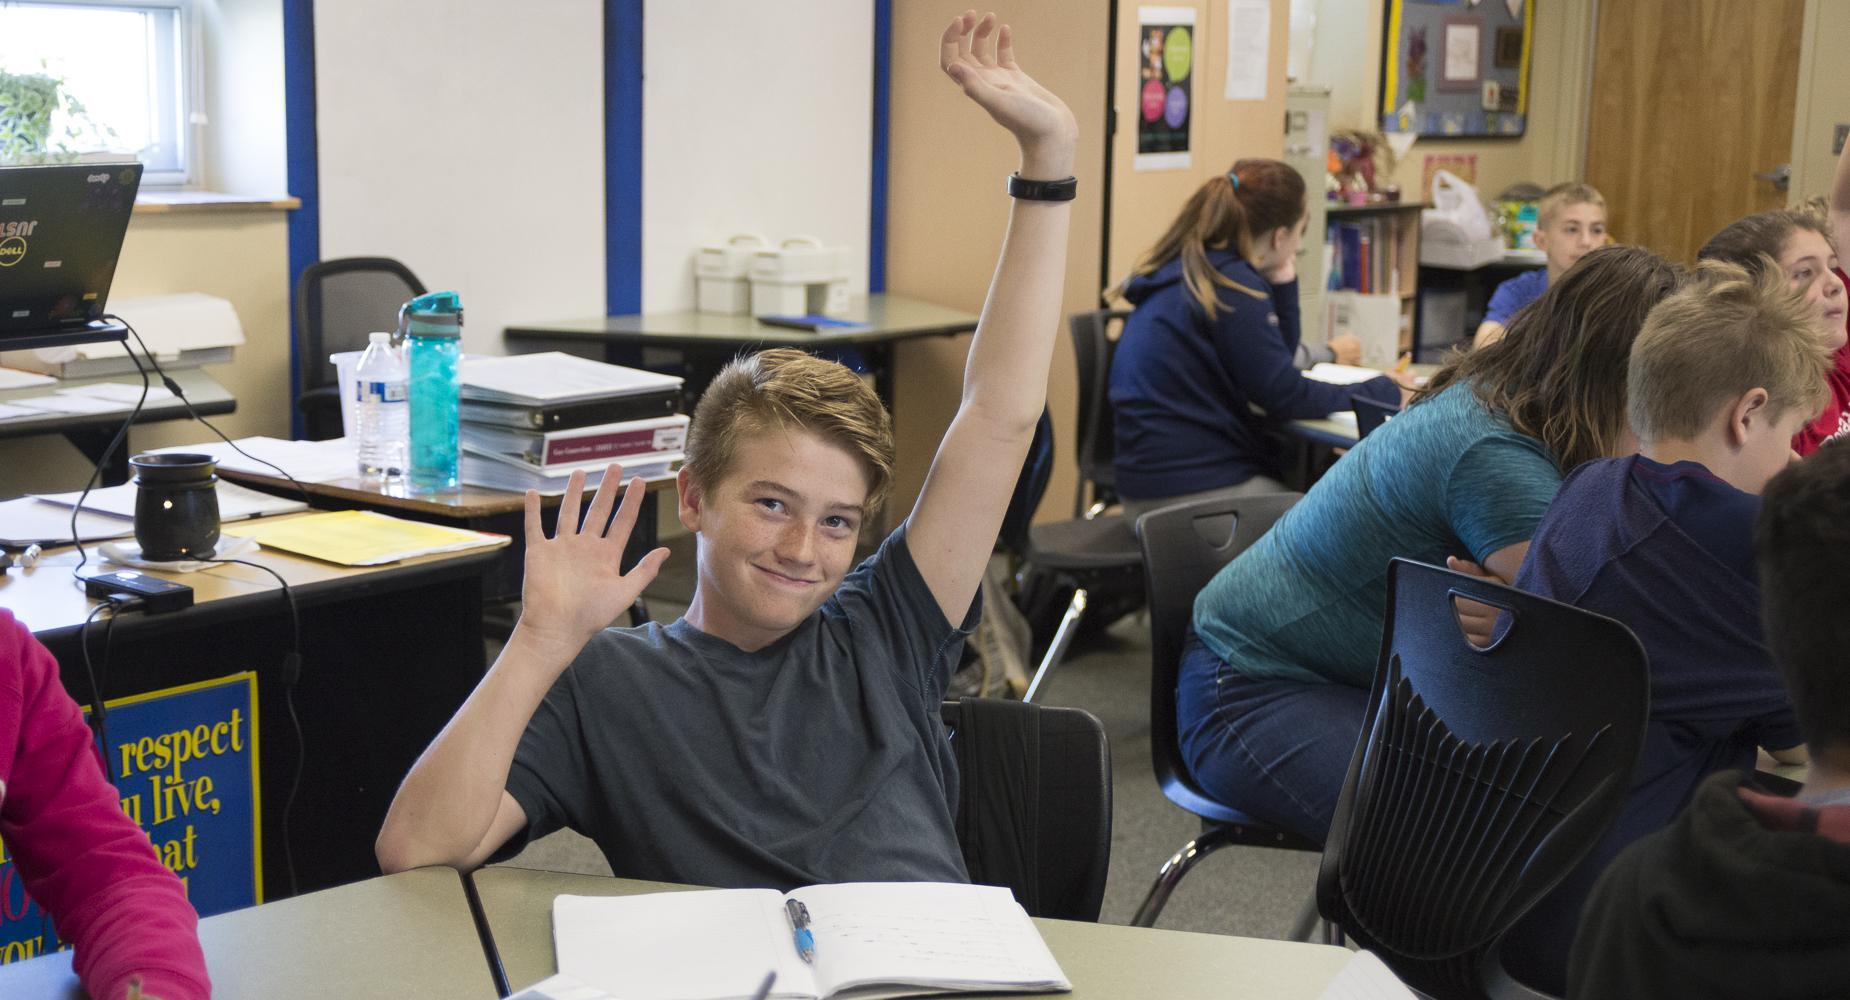 Boy raises his hand in class